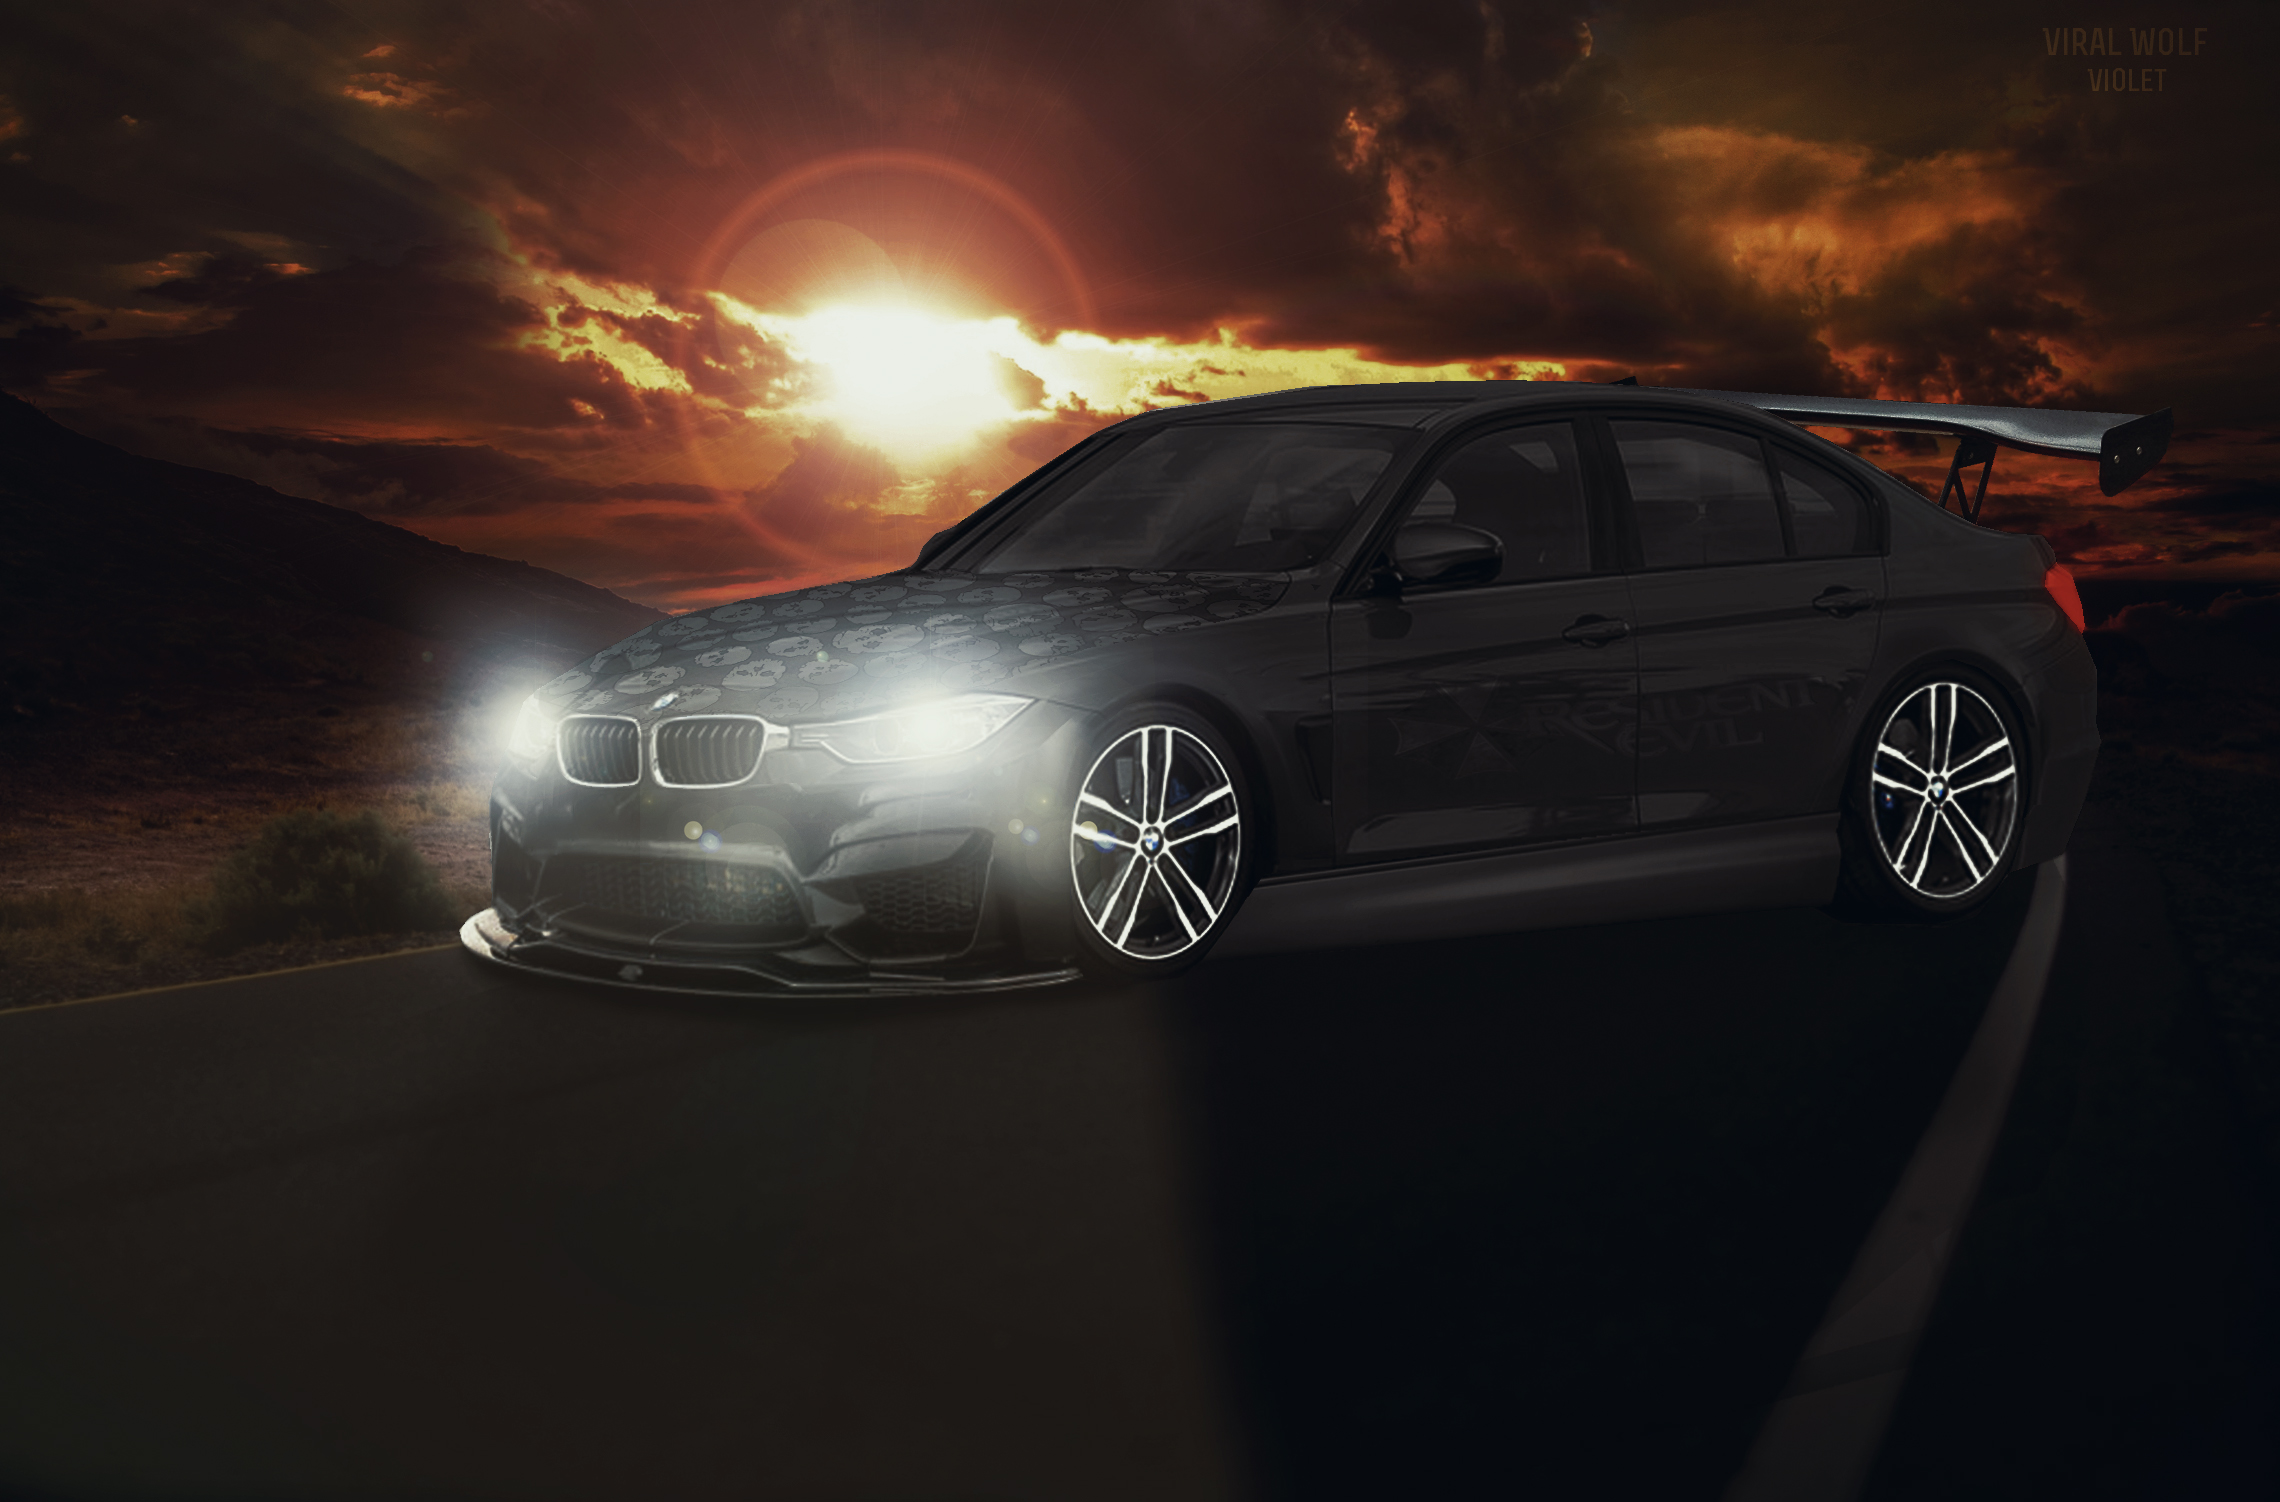 Waiting For You (BMW m3)